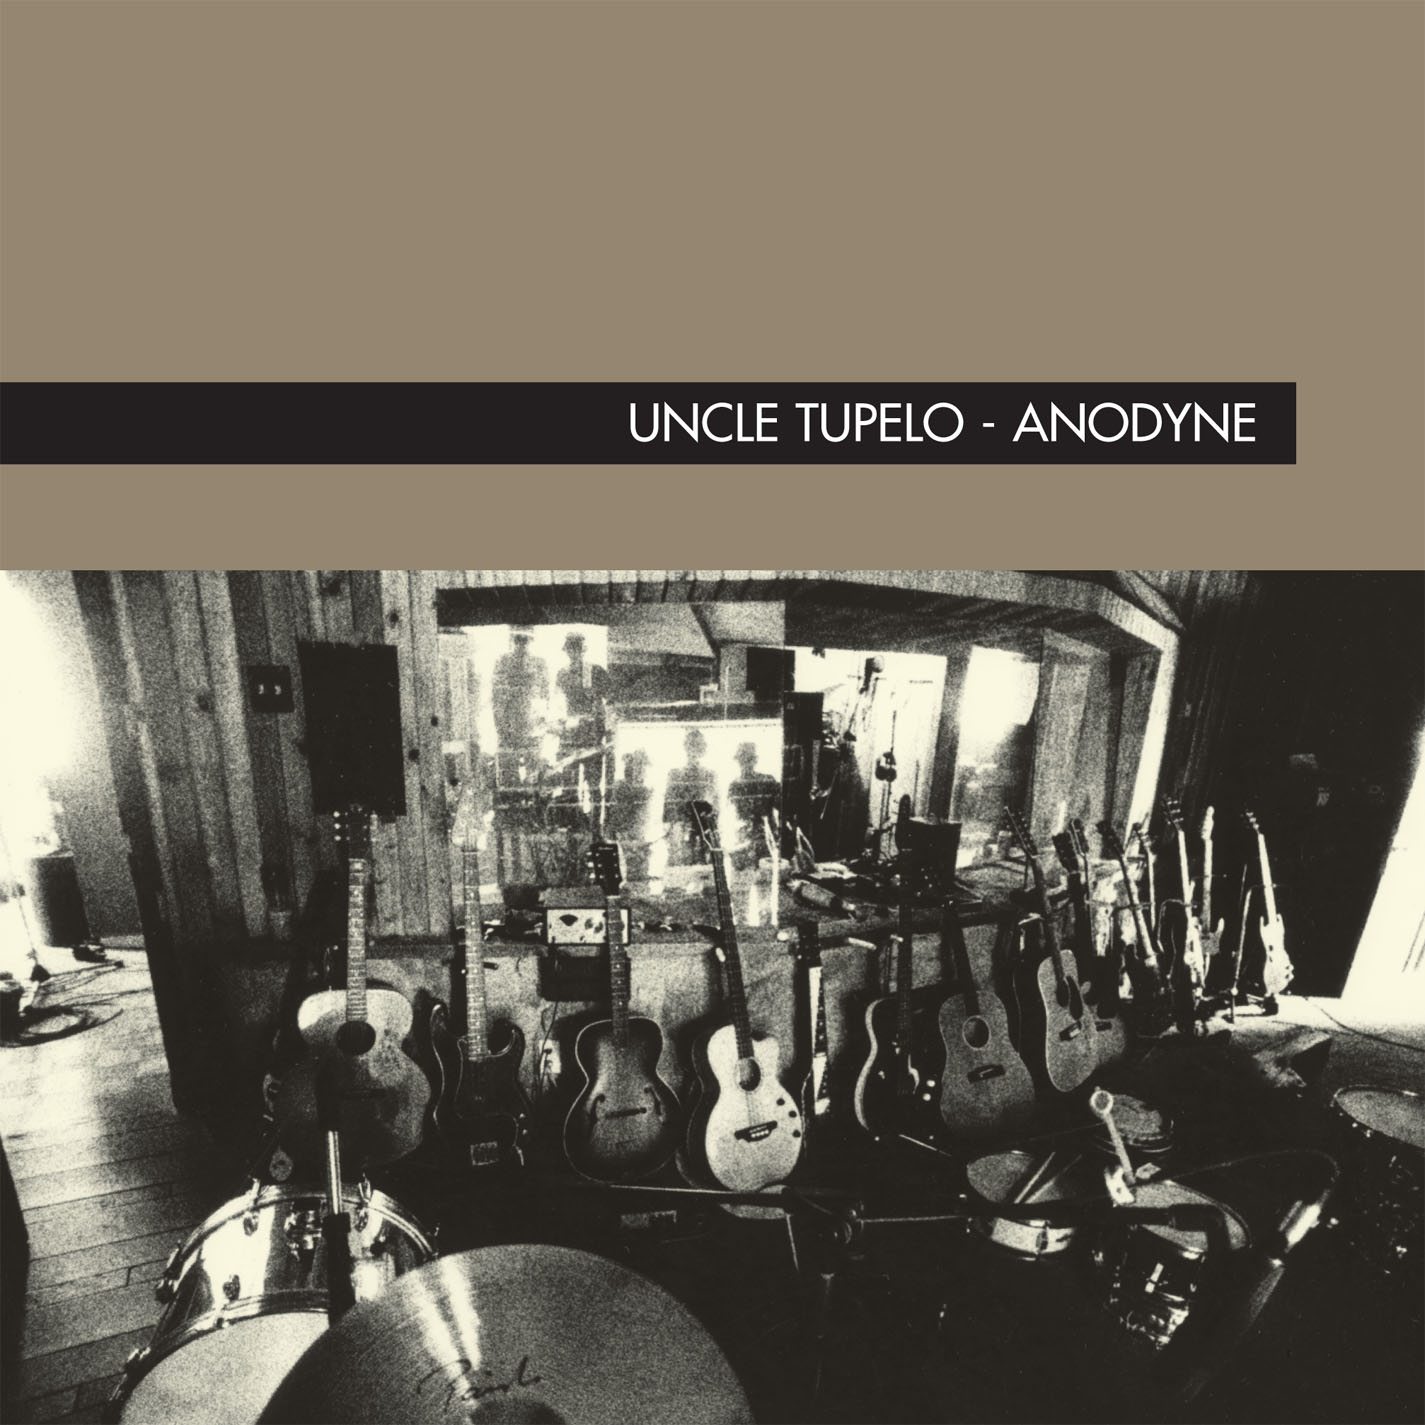 Uncle Tupelo's 'Anodyne' at 25: An Oral History